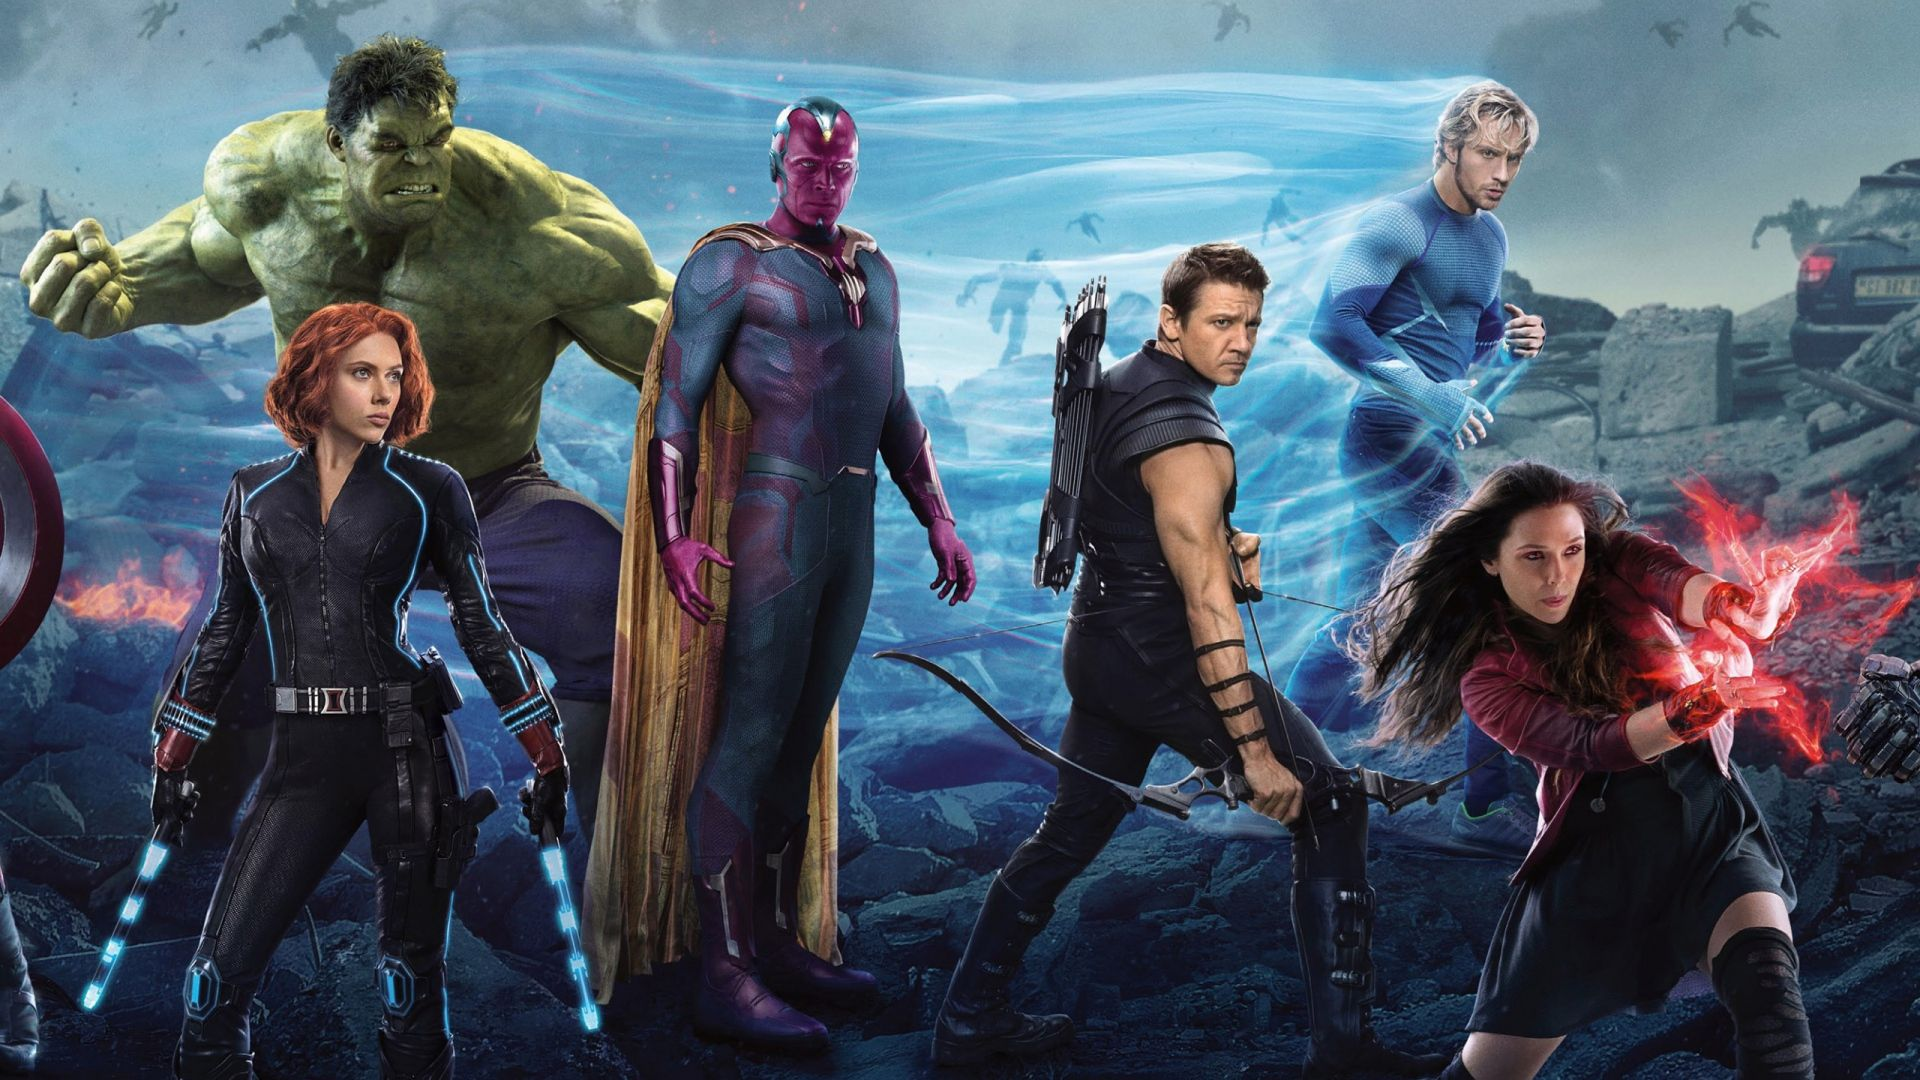 marvel avengers hd wallpaper 1920×1080 download hd wallpapers of